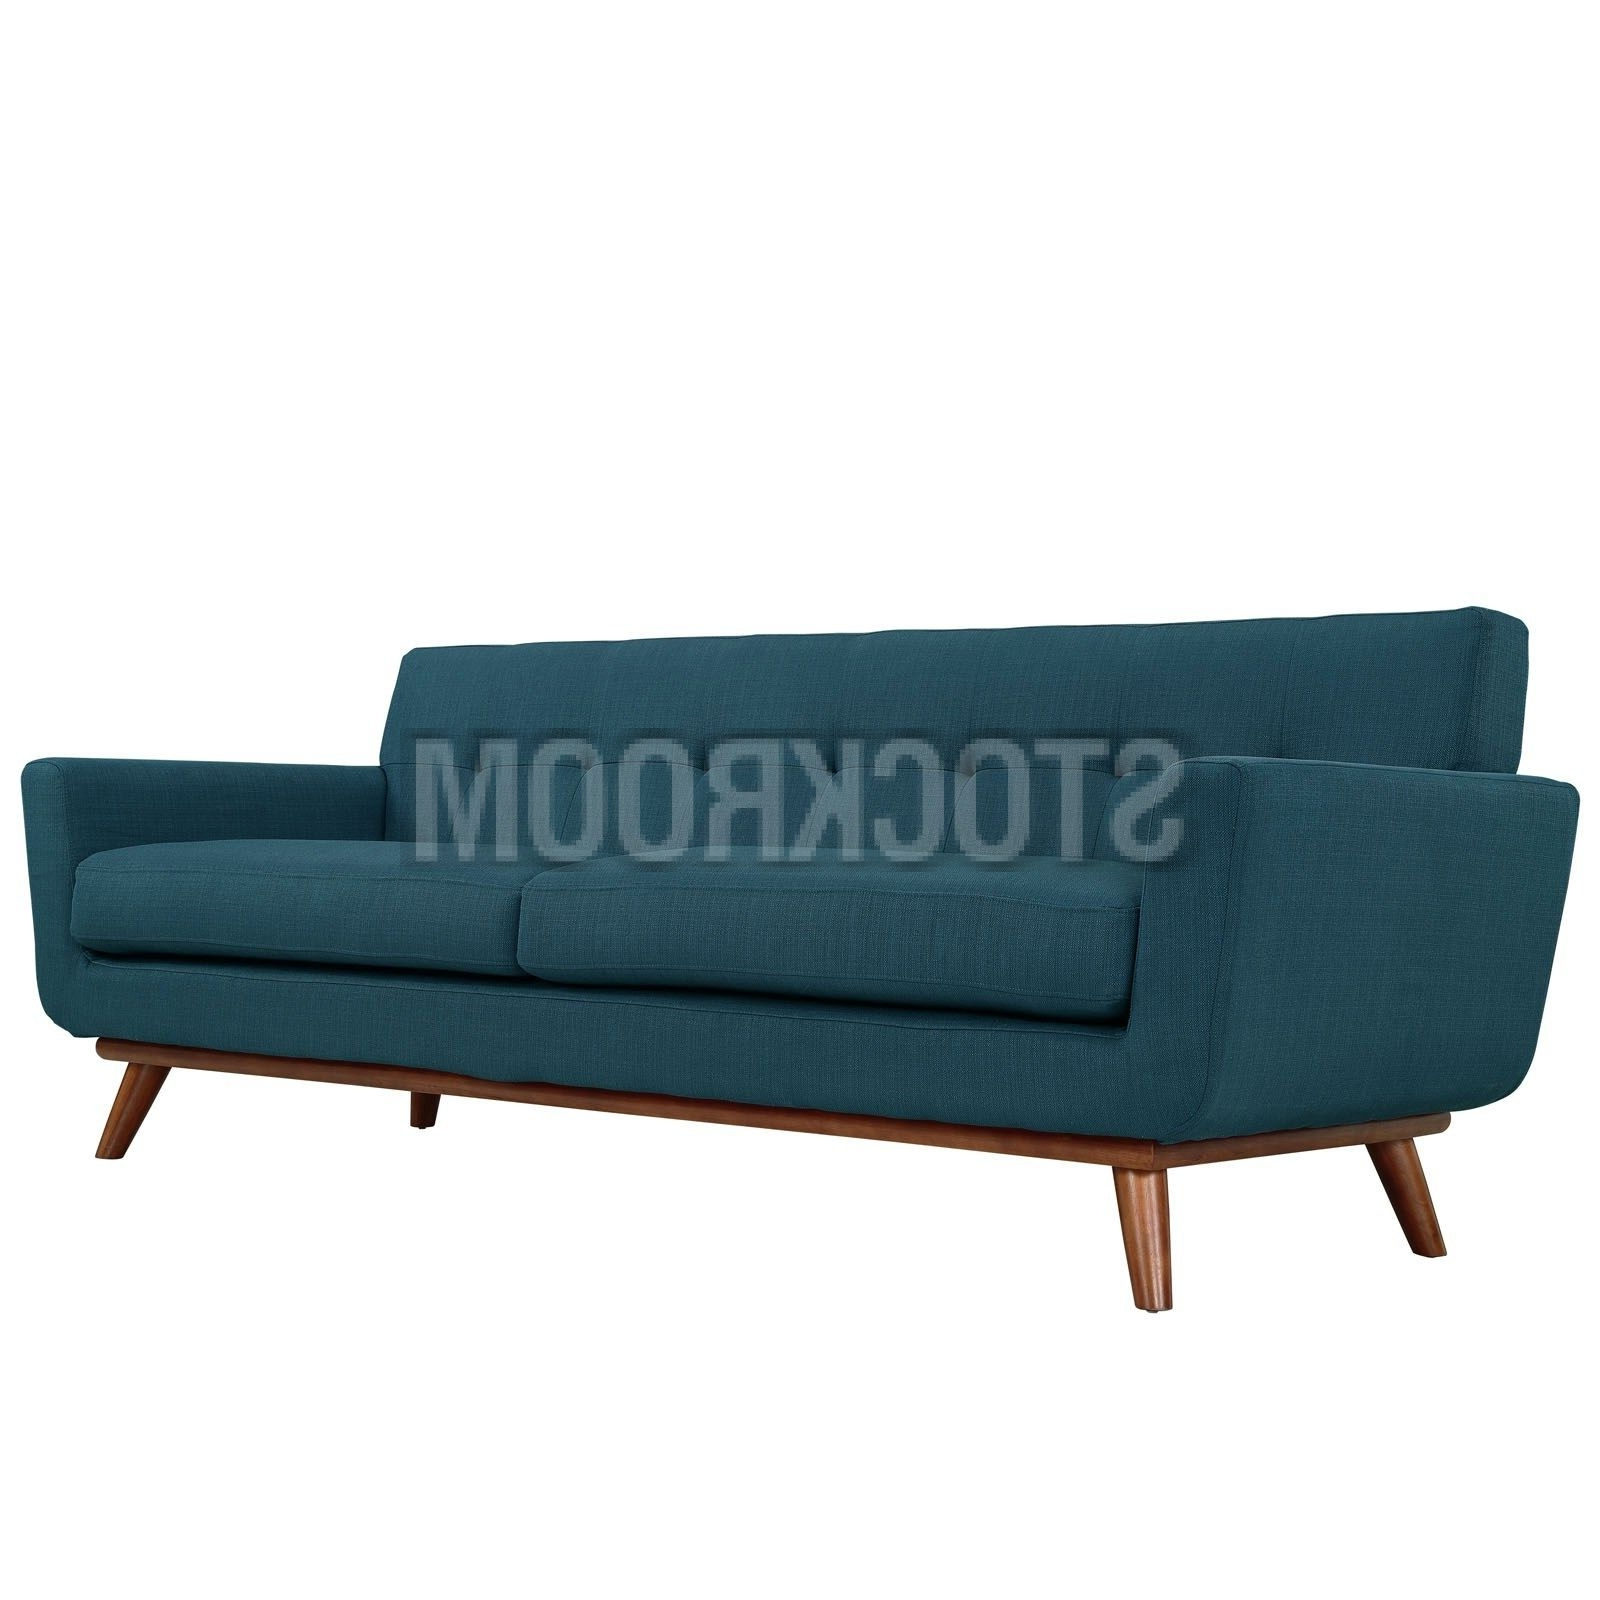 Widely Used Aquarius Dark Grey Sofa Chairs For Aquarius Fabric Sofa 2 Seater : Stockroom Hong Kong Contemporary (View 19 of 20)